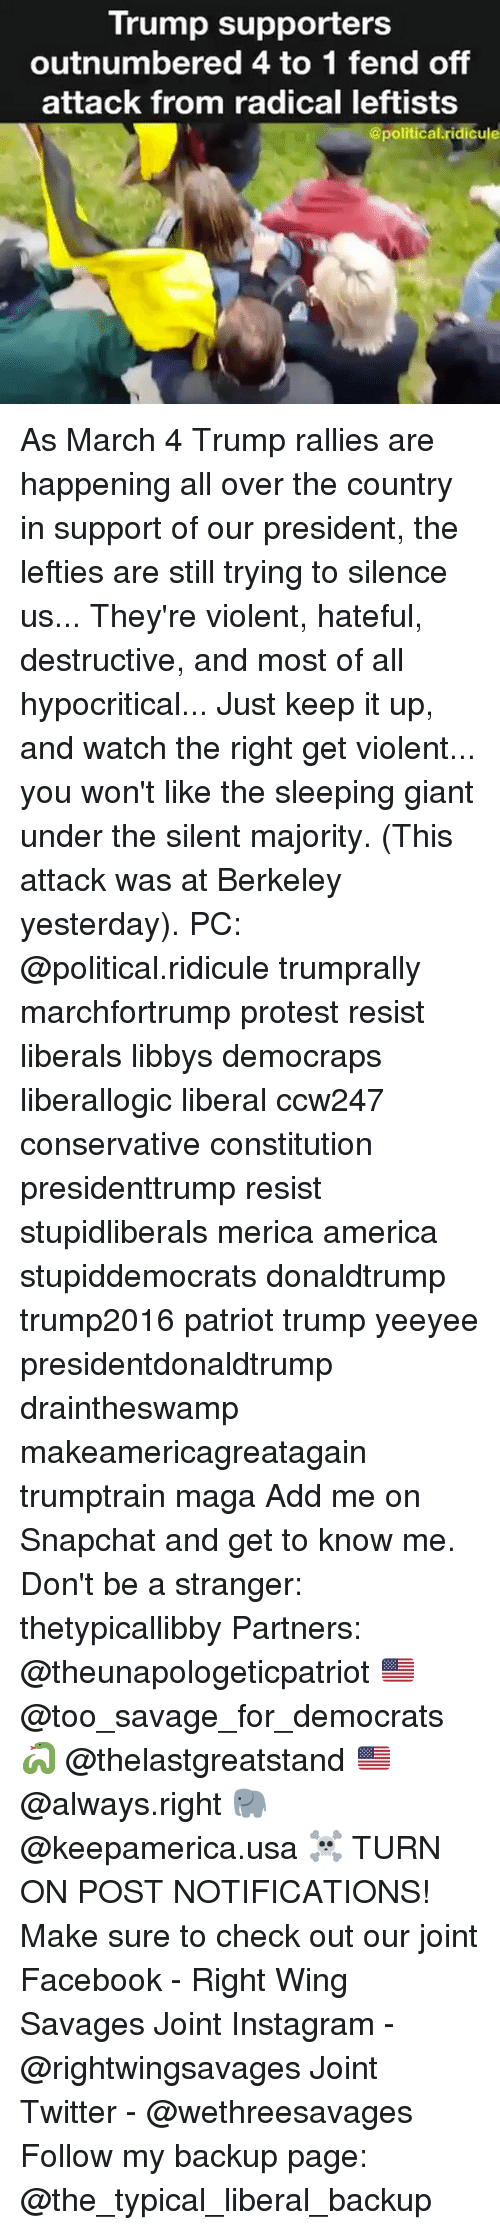 Giant, Giants, and Conservative: Trump supporters  outnumbered 4 to 1 fend off  attack from radical leftists  @political ridicule As March 4 Trump rallies are happening all over the country in support of our president, the lefties are still trying to silence us... They're violent, hateful, destructive, and most of all hypocritical... Just keep it up, and watch the right get violent... you won't like the sleeping giant under the silent majority. (This attack was at Berkeley yesterday). PC: @political.ridicule trumprally marchfortrump protest resist liberals libbys democraps liberallogic liberal ccw247 conservative constitution presidenttrump resist stupidliberals merica america stupiddemocrats donaldtrump trump2016 patriot trump yeeyee presidentdonaldtrump draintheswamp makeamericagreatagain trumptrain maga Add me on Snapchat and get to know me. Don't be a stranger: thetypicallibby Partners: @theunapologeticpatriot 🇺🇸 @too_savage_for_democrats 🐍 @thelastgreatstand 🇺🇸 @always.right 🐘 @keepamerica.usa ☠️ TURN ON POST NOTIFICATIONS! Make sure to check out our joint Facebook - Right Wing Savages Joint Instagram - @rightwingsavages Joint Twitter - @wethreesavages Follow my backup page: @the_typical_liberal_backup